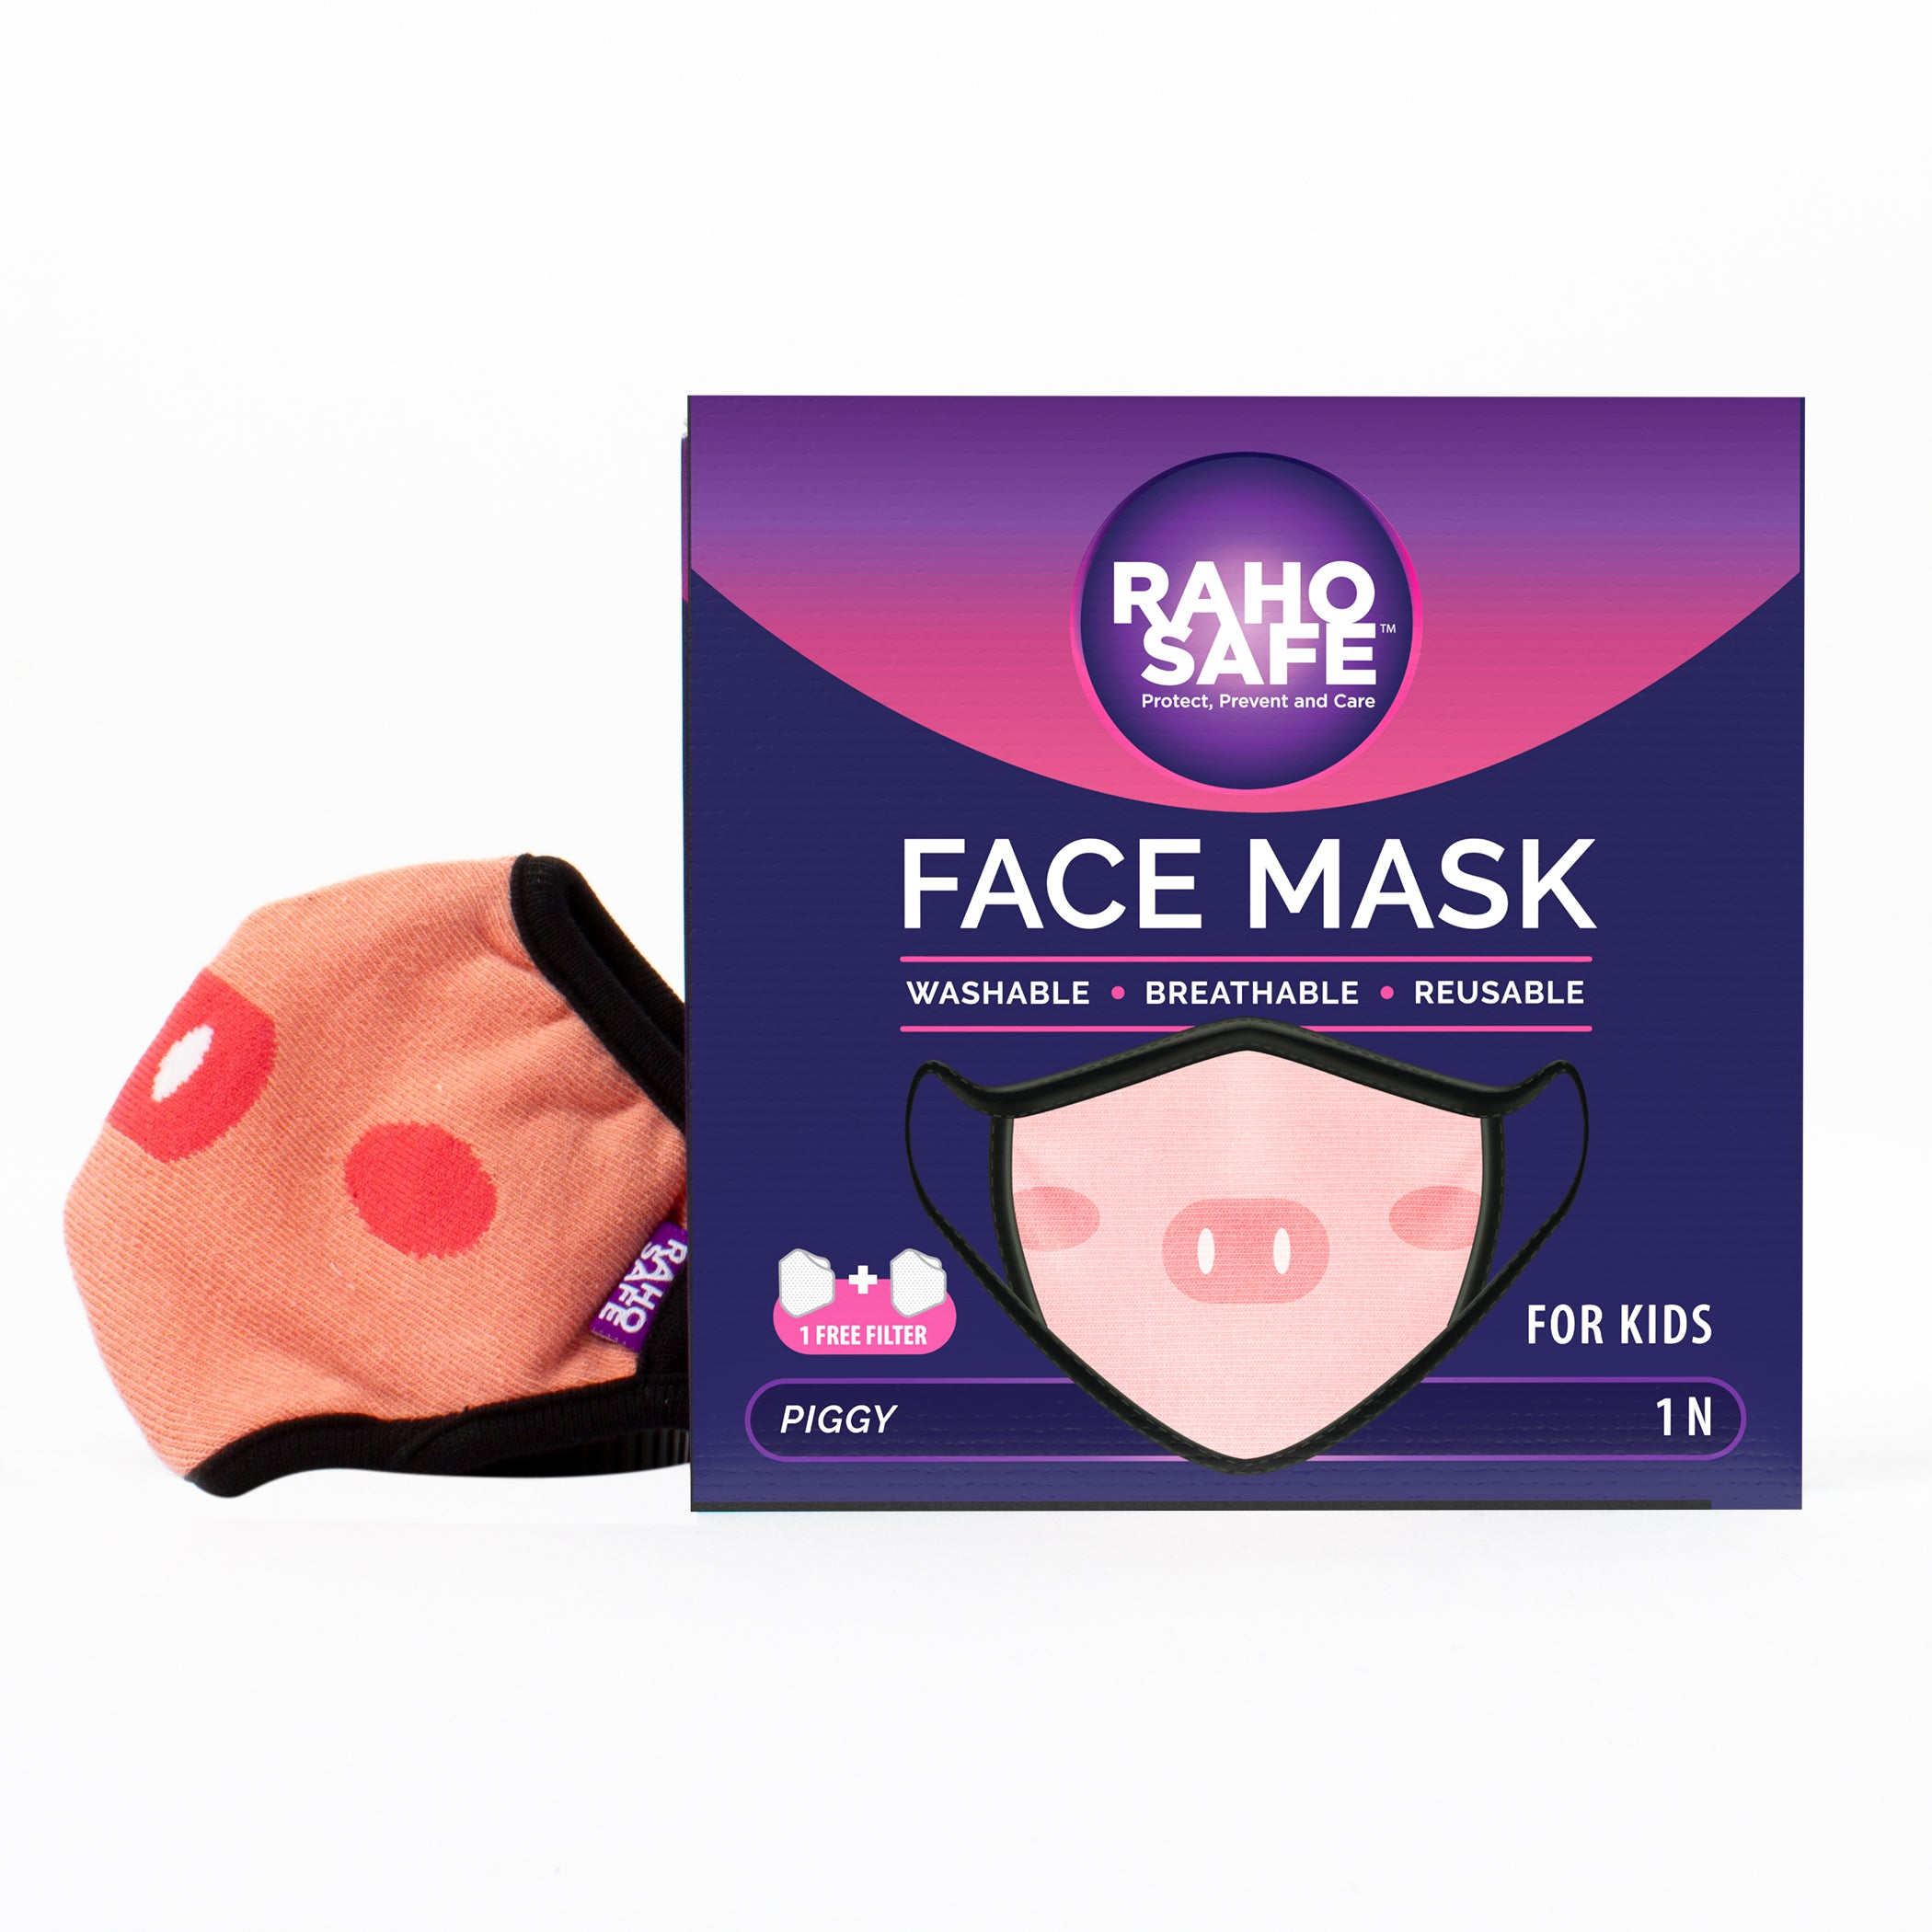 Piggy Face Mask for Kids (Qty - 1N)